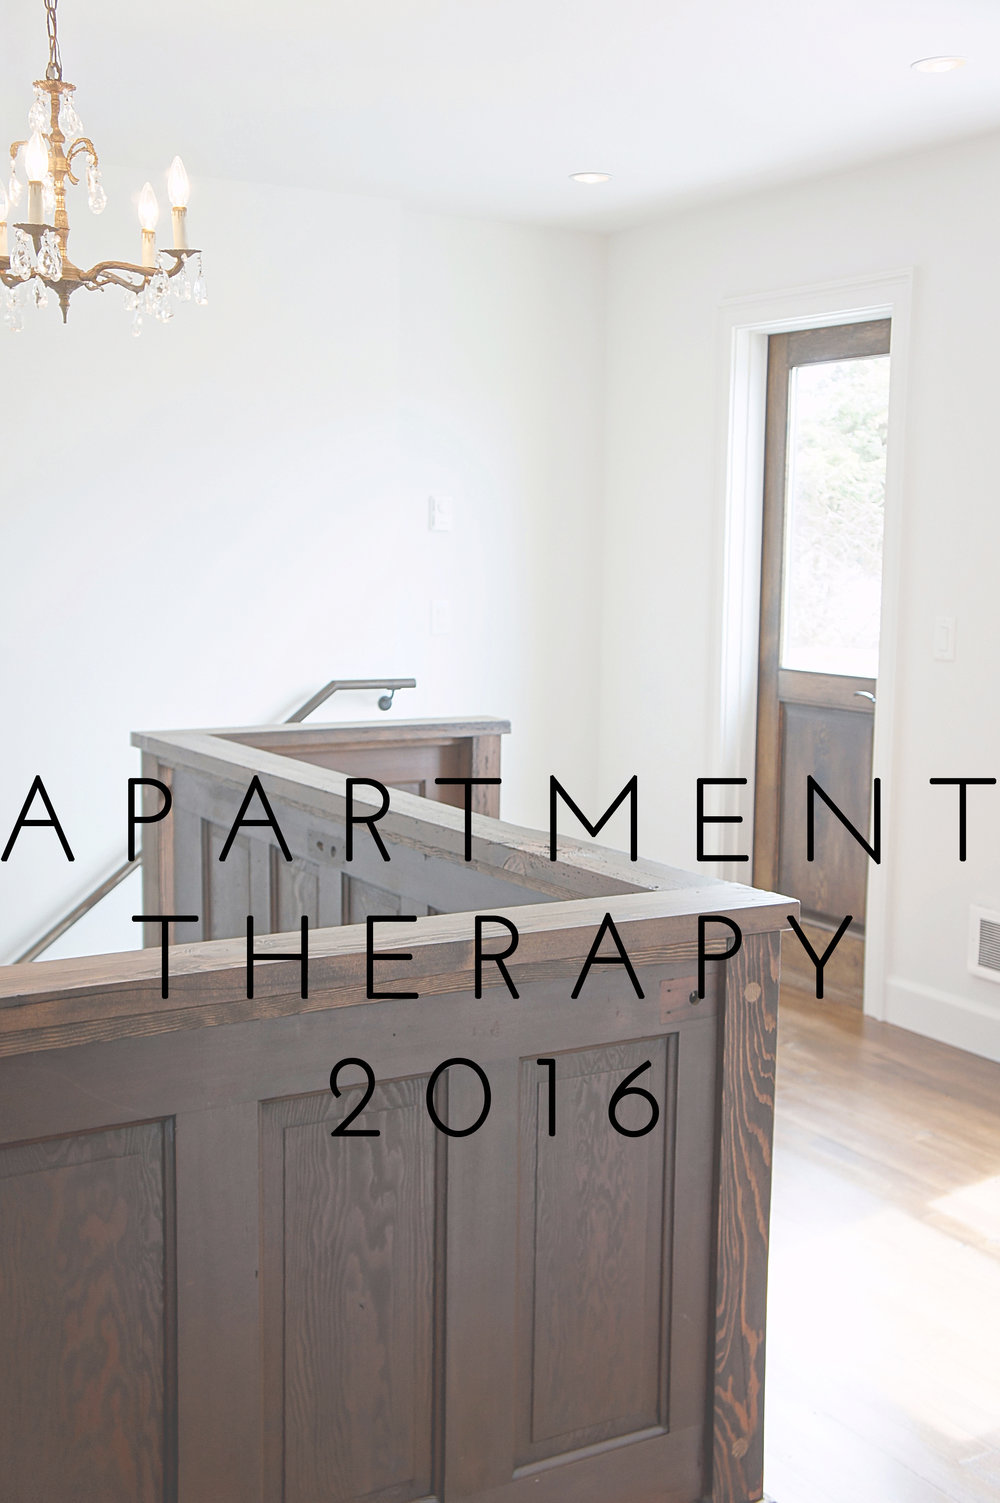 Kaemingk Design Apartment Therapy 2016